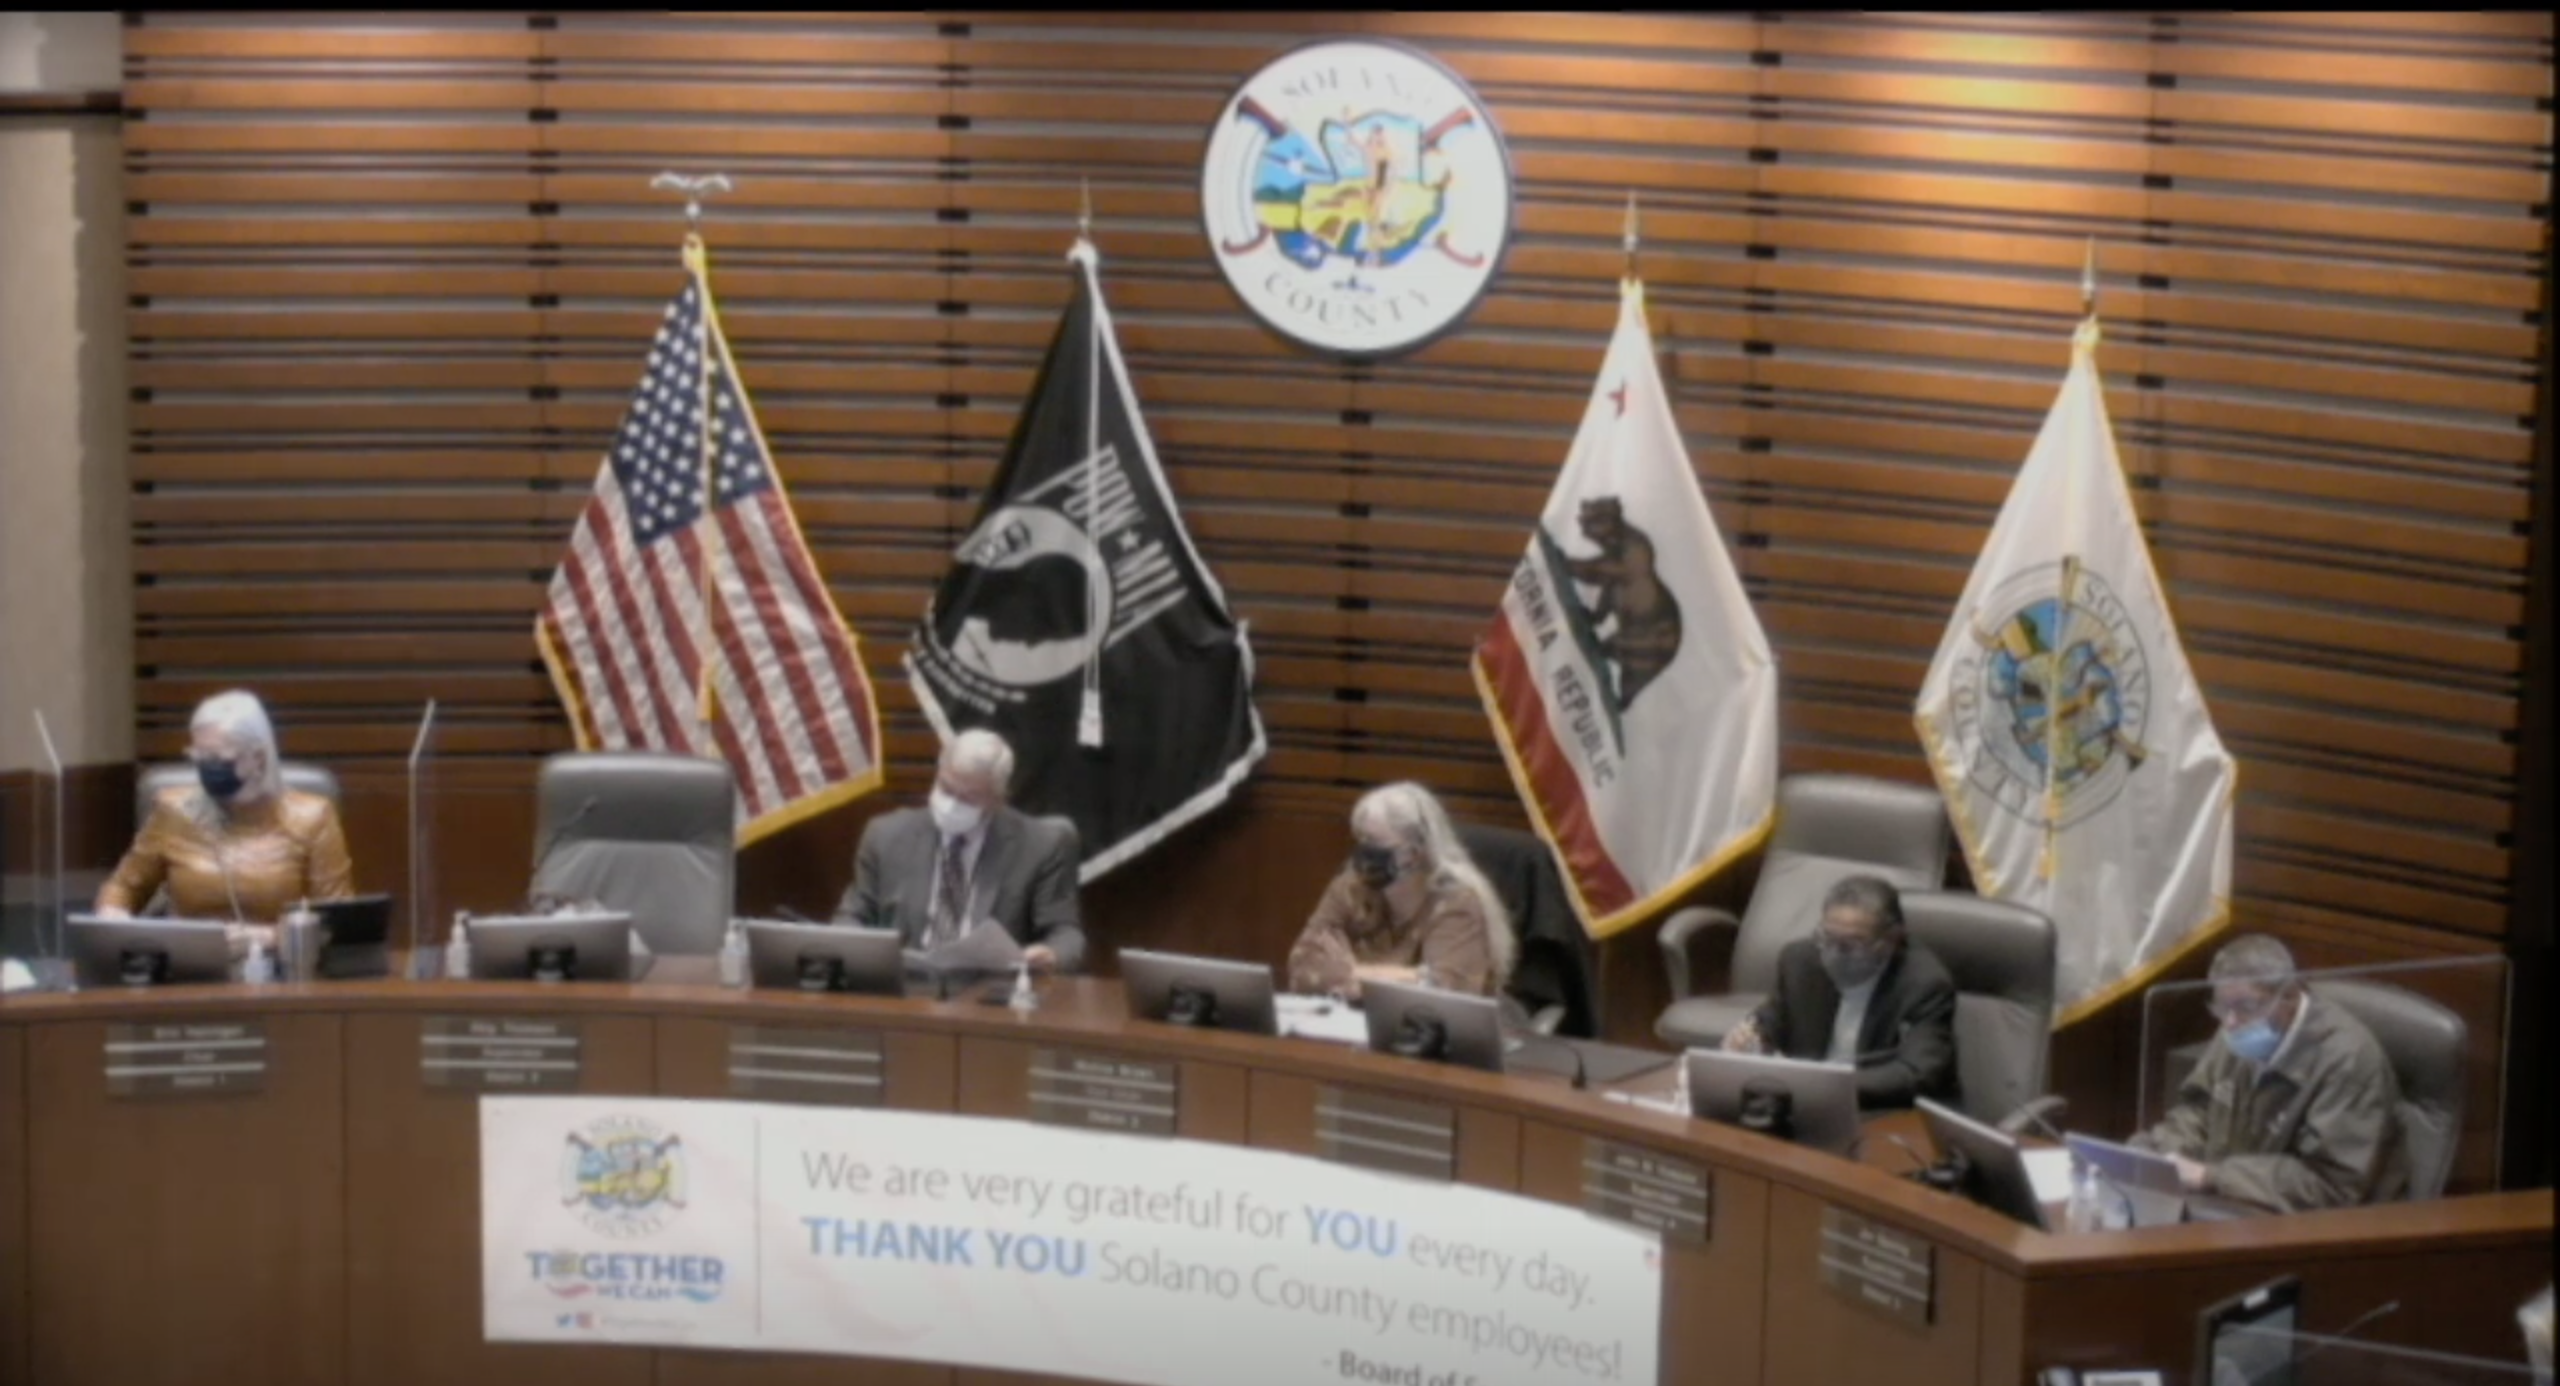 This Solano County supervisors meeting on Nov. 17 was disrupted at the beginning by rowdy anti-maskers who compared pandemic safety precautions to the Nazi regime. (Screenshot from livestream)